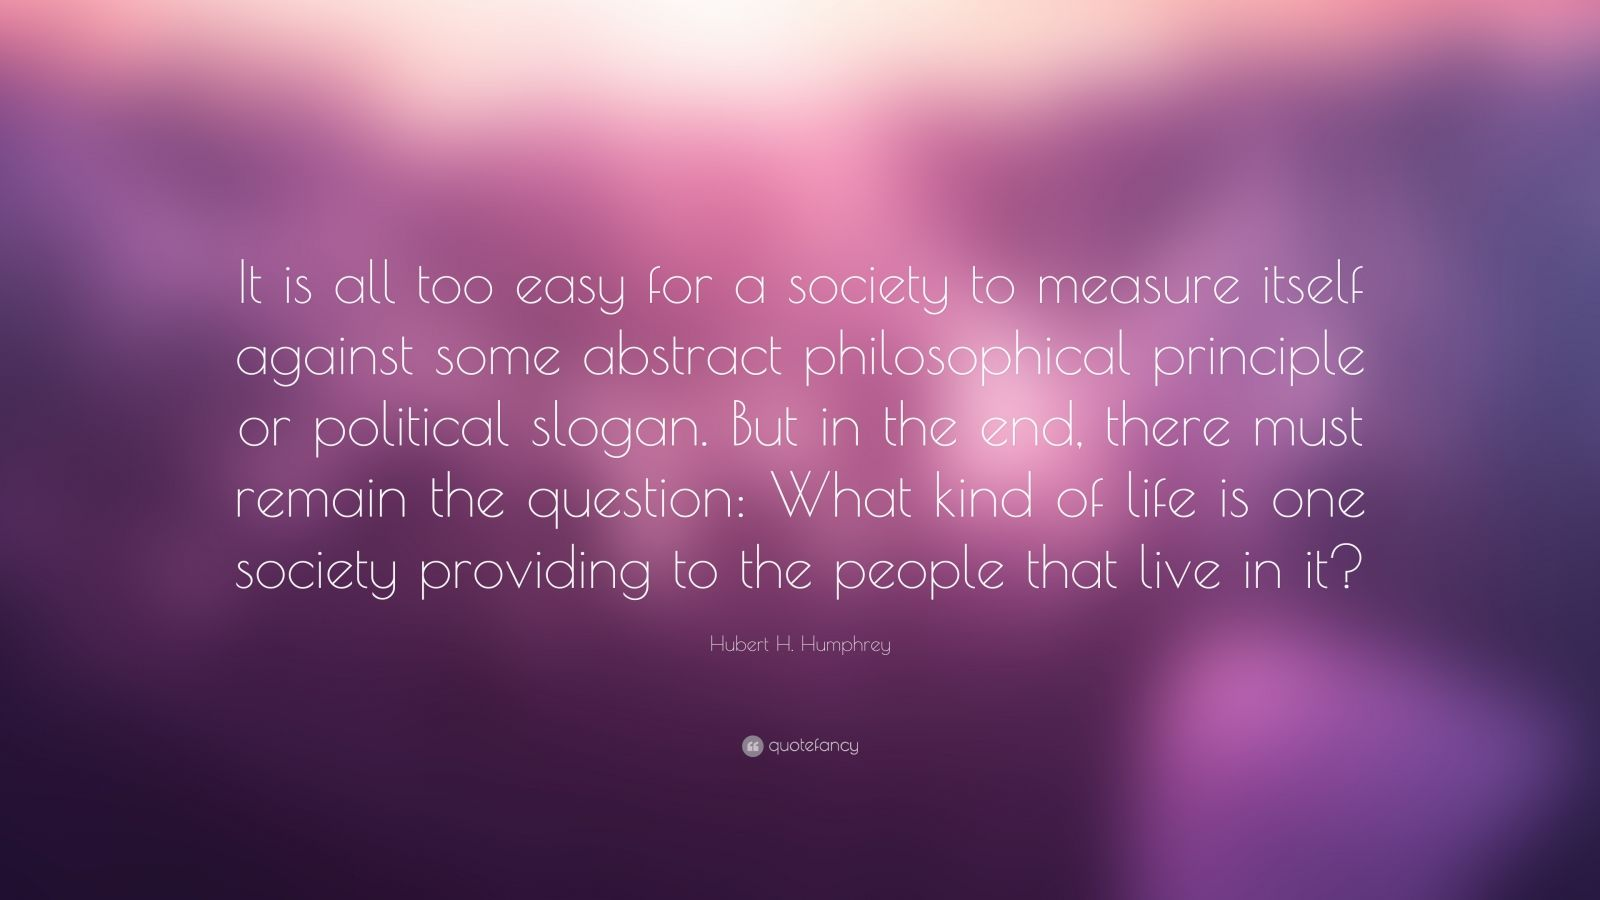 """Hubert H. Humphrey Quote: """"It is all too easy for a society to measure itself against some abstract philosophical principle or political slogan. But in the end, there must remain the question: What kind of life is one society providing to the people that live in it?"""""""